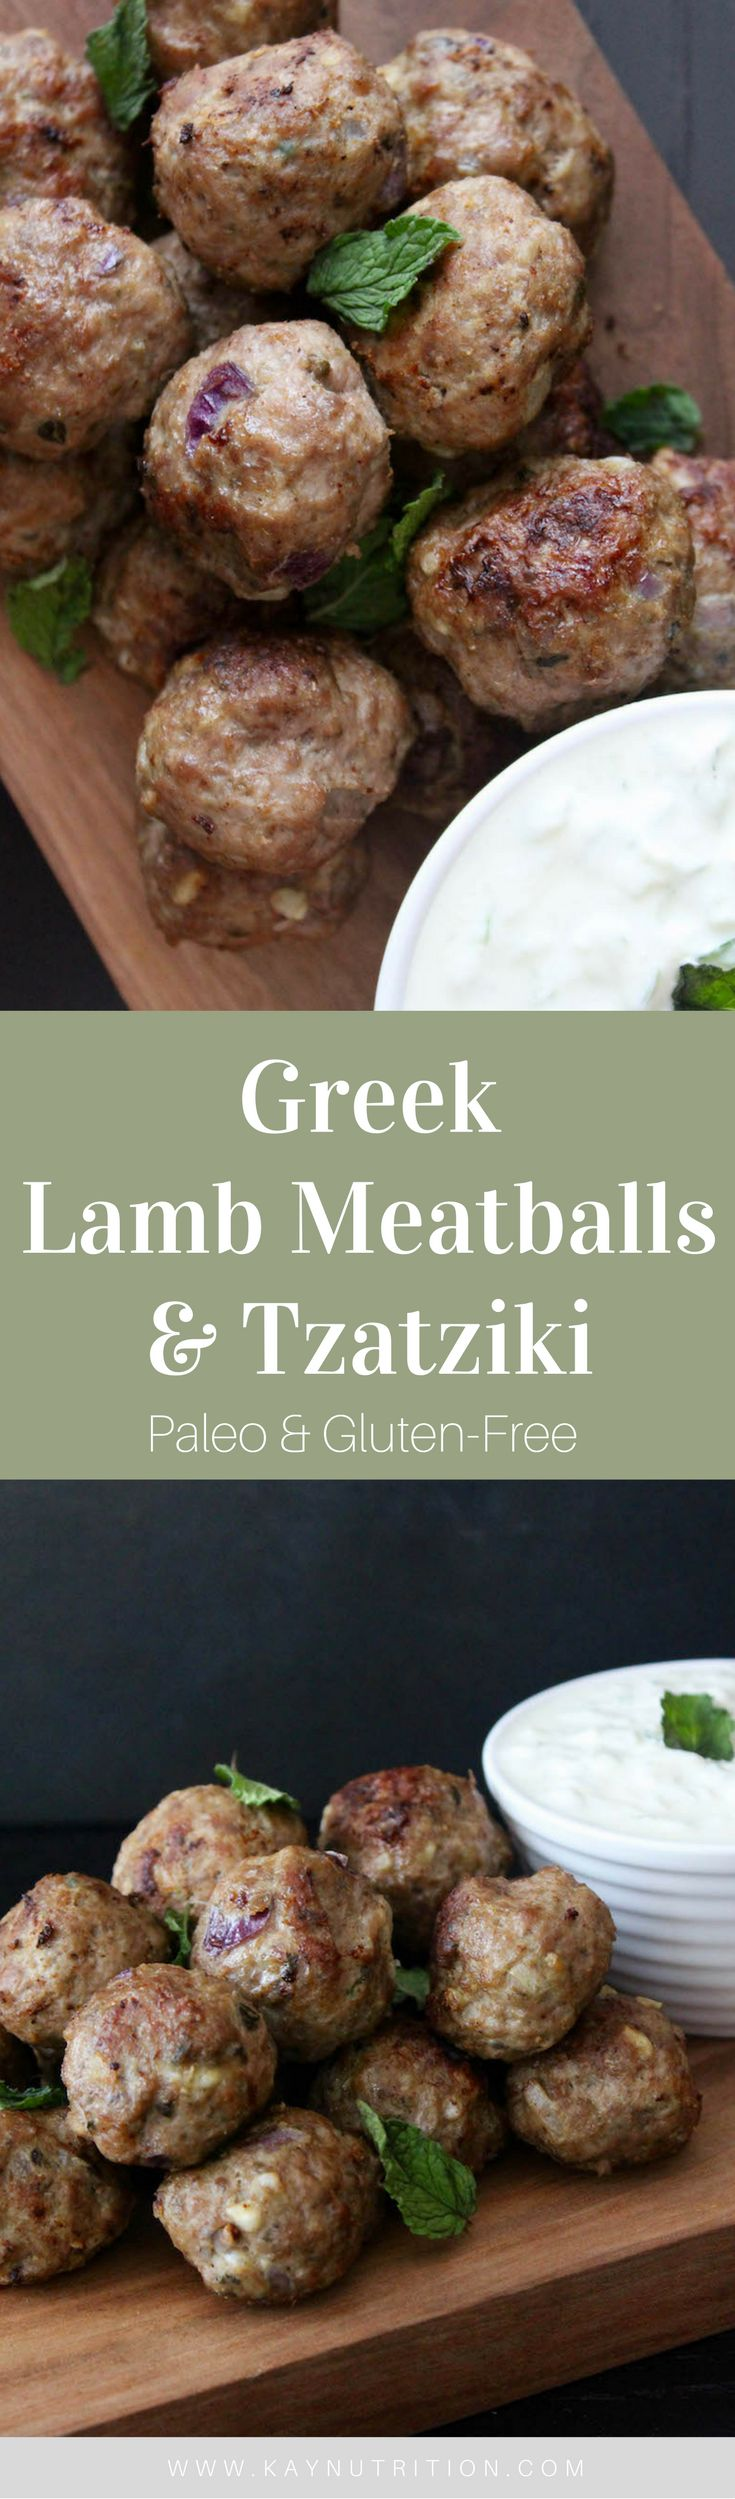 These traditional Greek Lamb Meatballs are crispy on the outside, tender and juicy on the inside, and full of traditional Greek flavours.